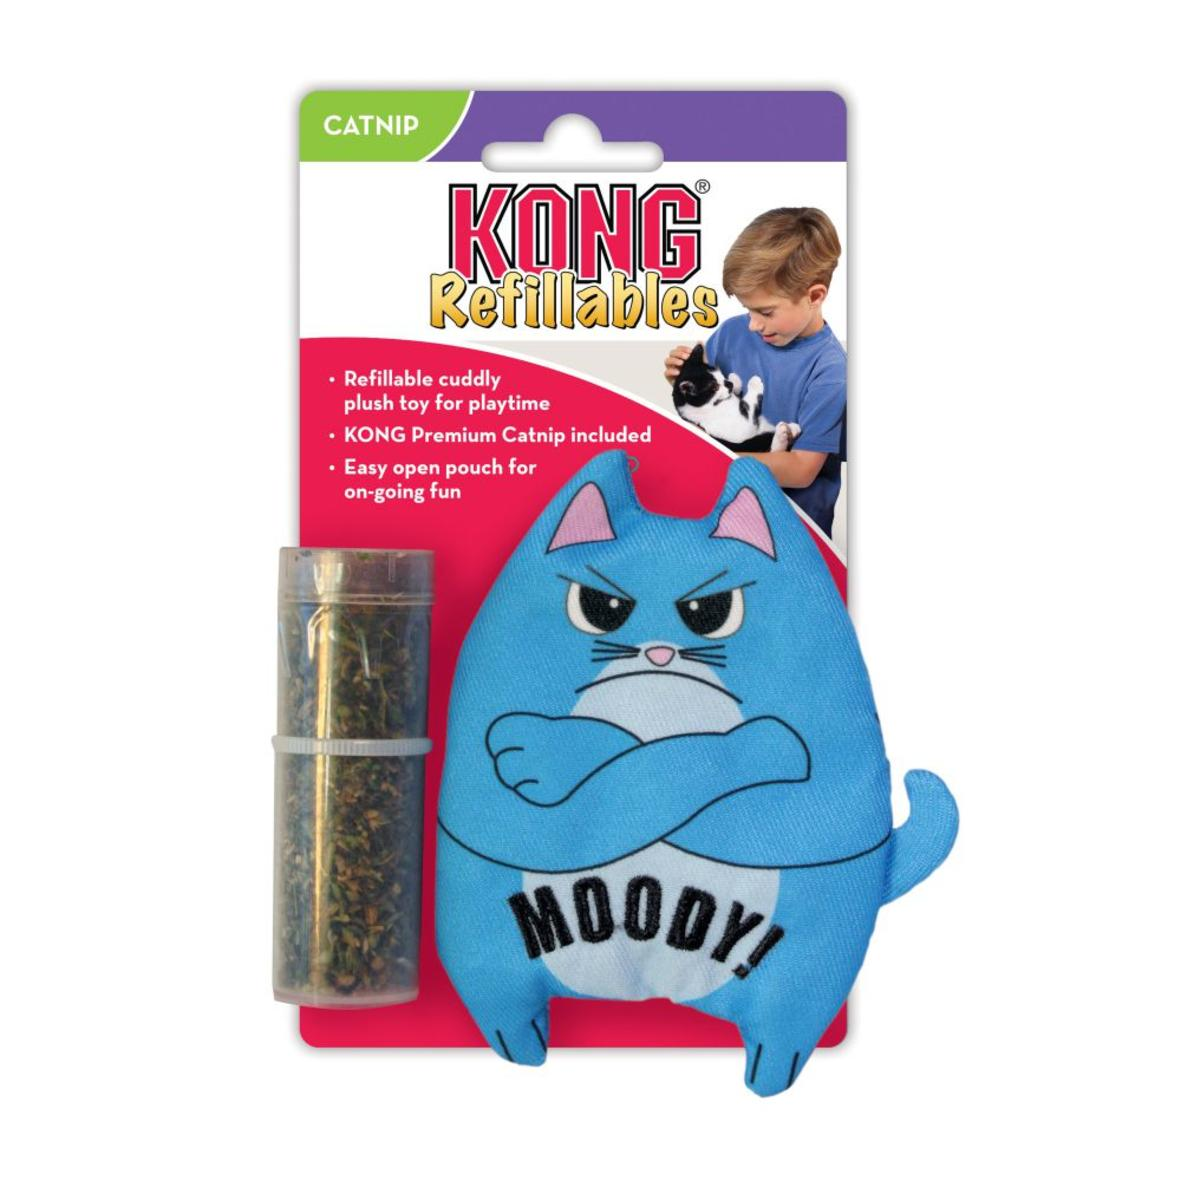 KONG Refillables Purrsonality Moody Cat with Catnip 10.5cm